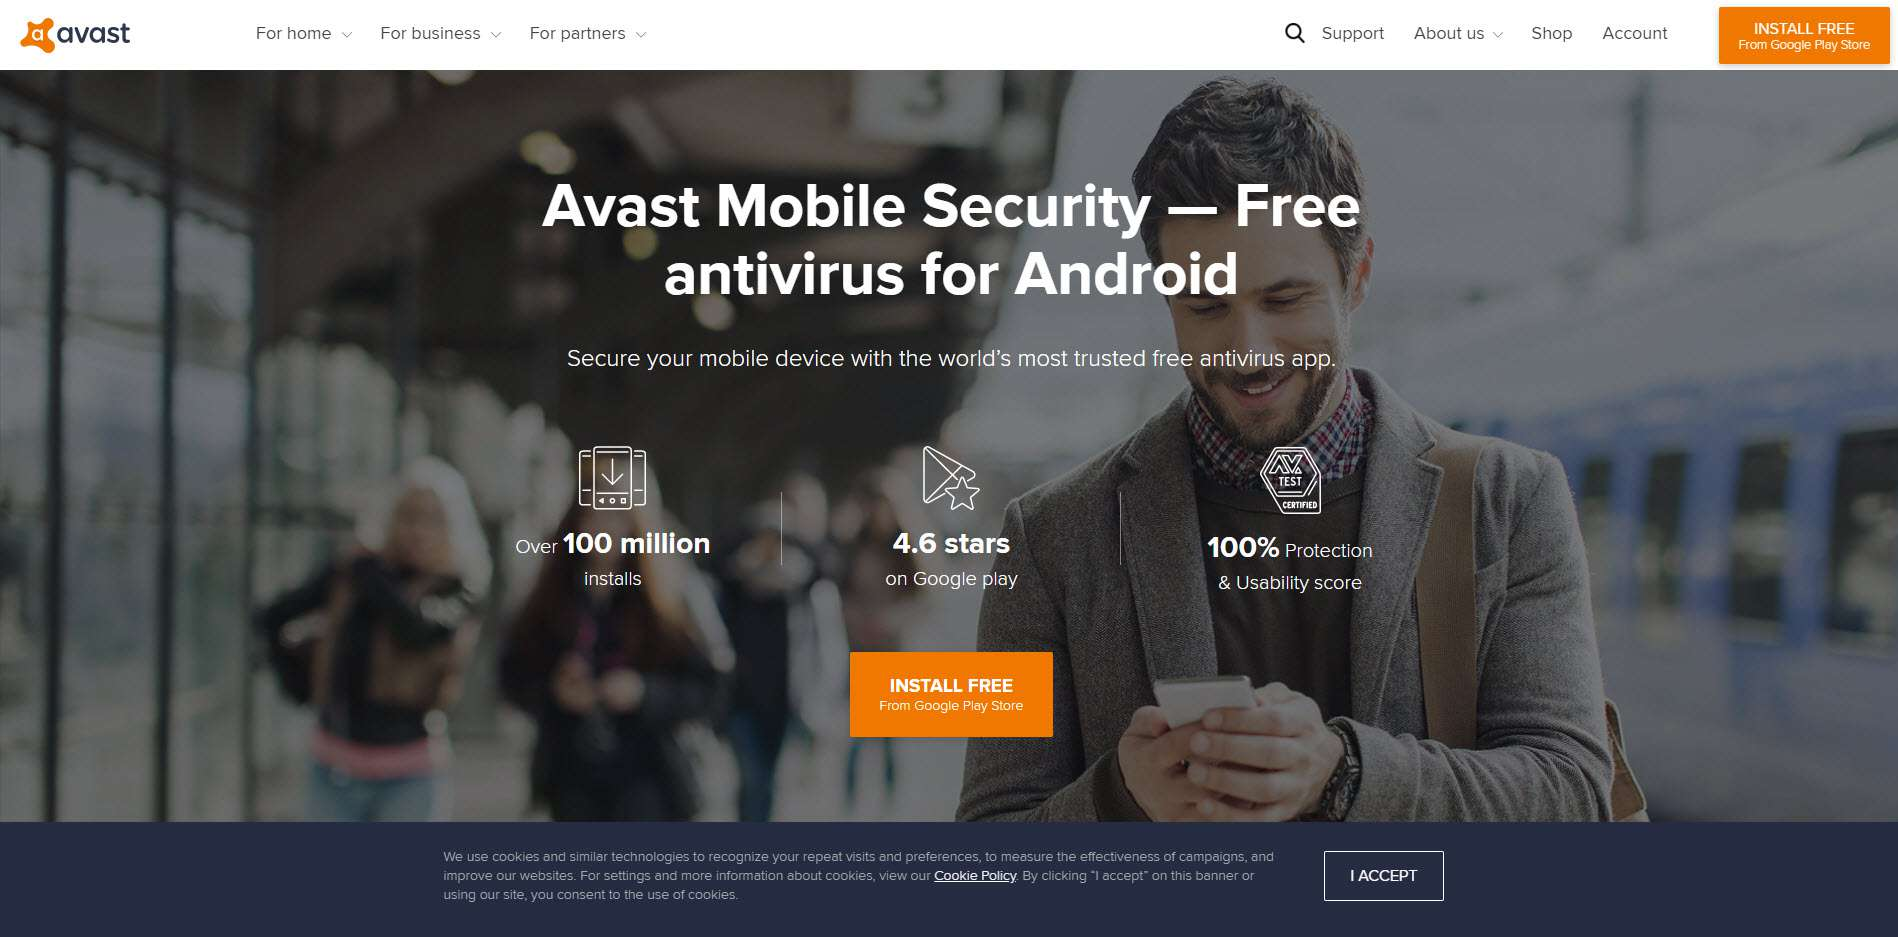 A screenshot of the Avast for Android download website.